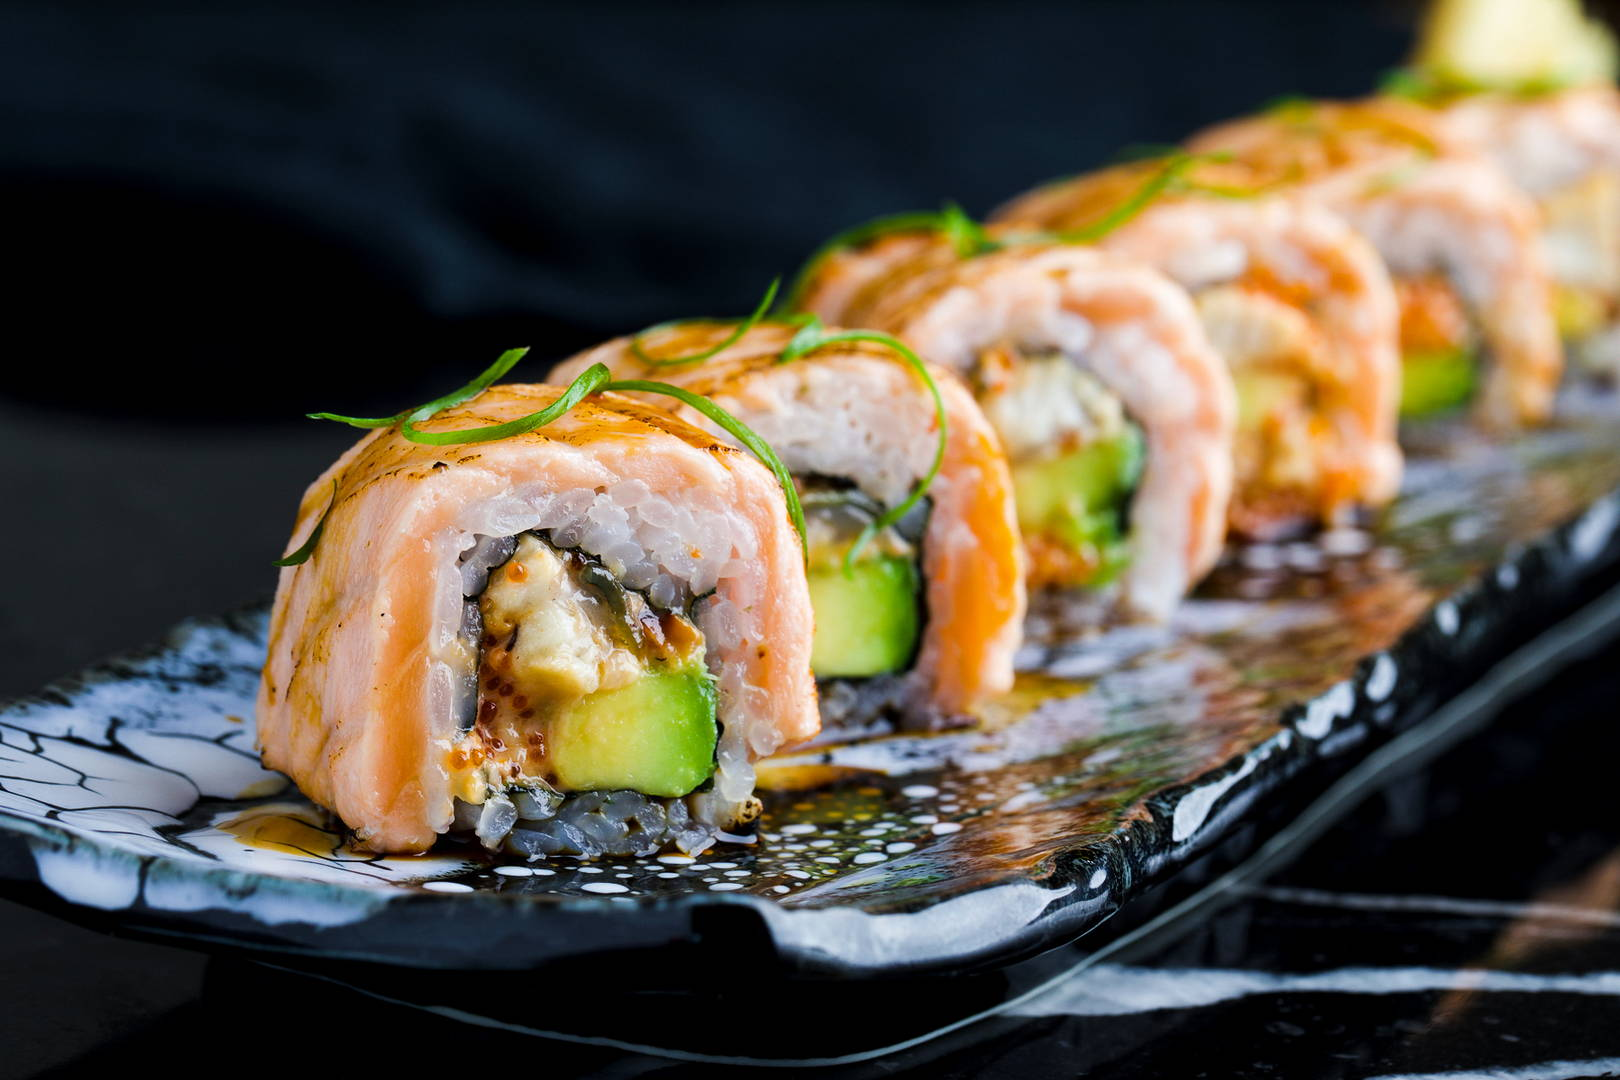 "<a href=""http://tokyosushibar.ru/delivery-menu/""  target=""_blank"" >ДОСТАВКА ИЗ TOKYO И BBcafe</a>"